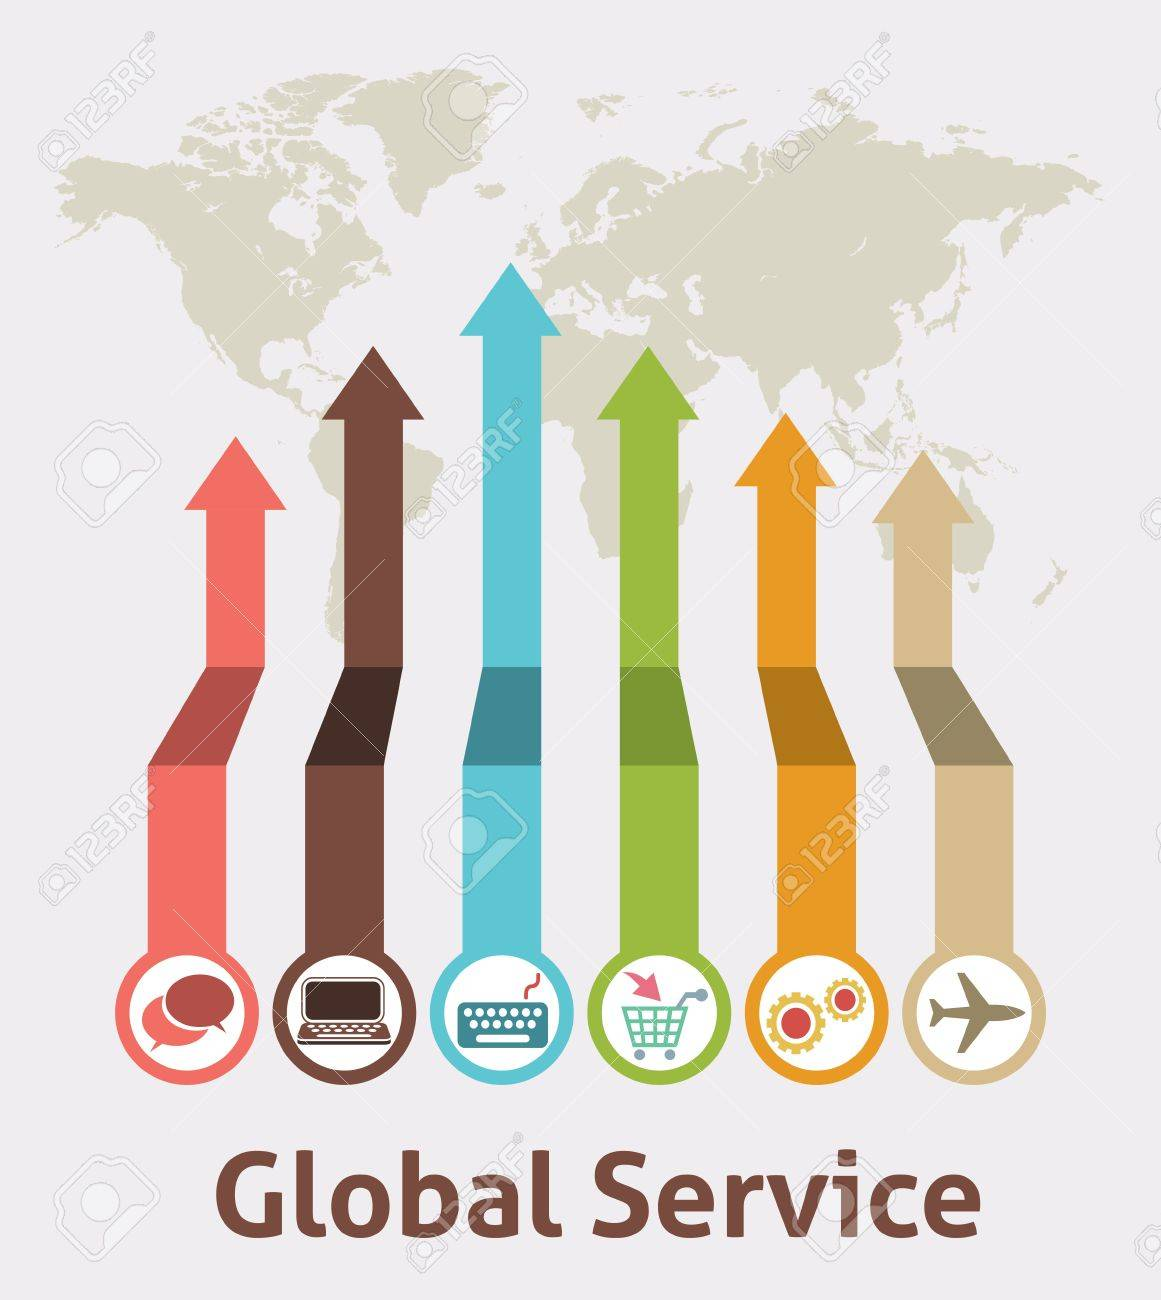 Global Service Idea Infographic Stock Vector - 20325484